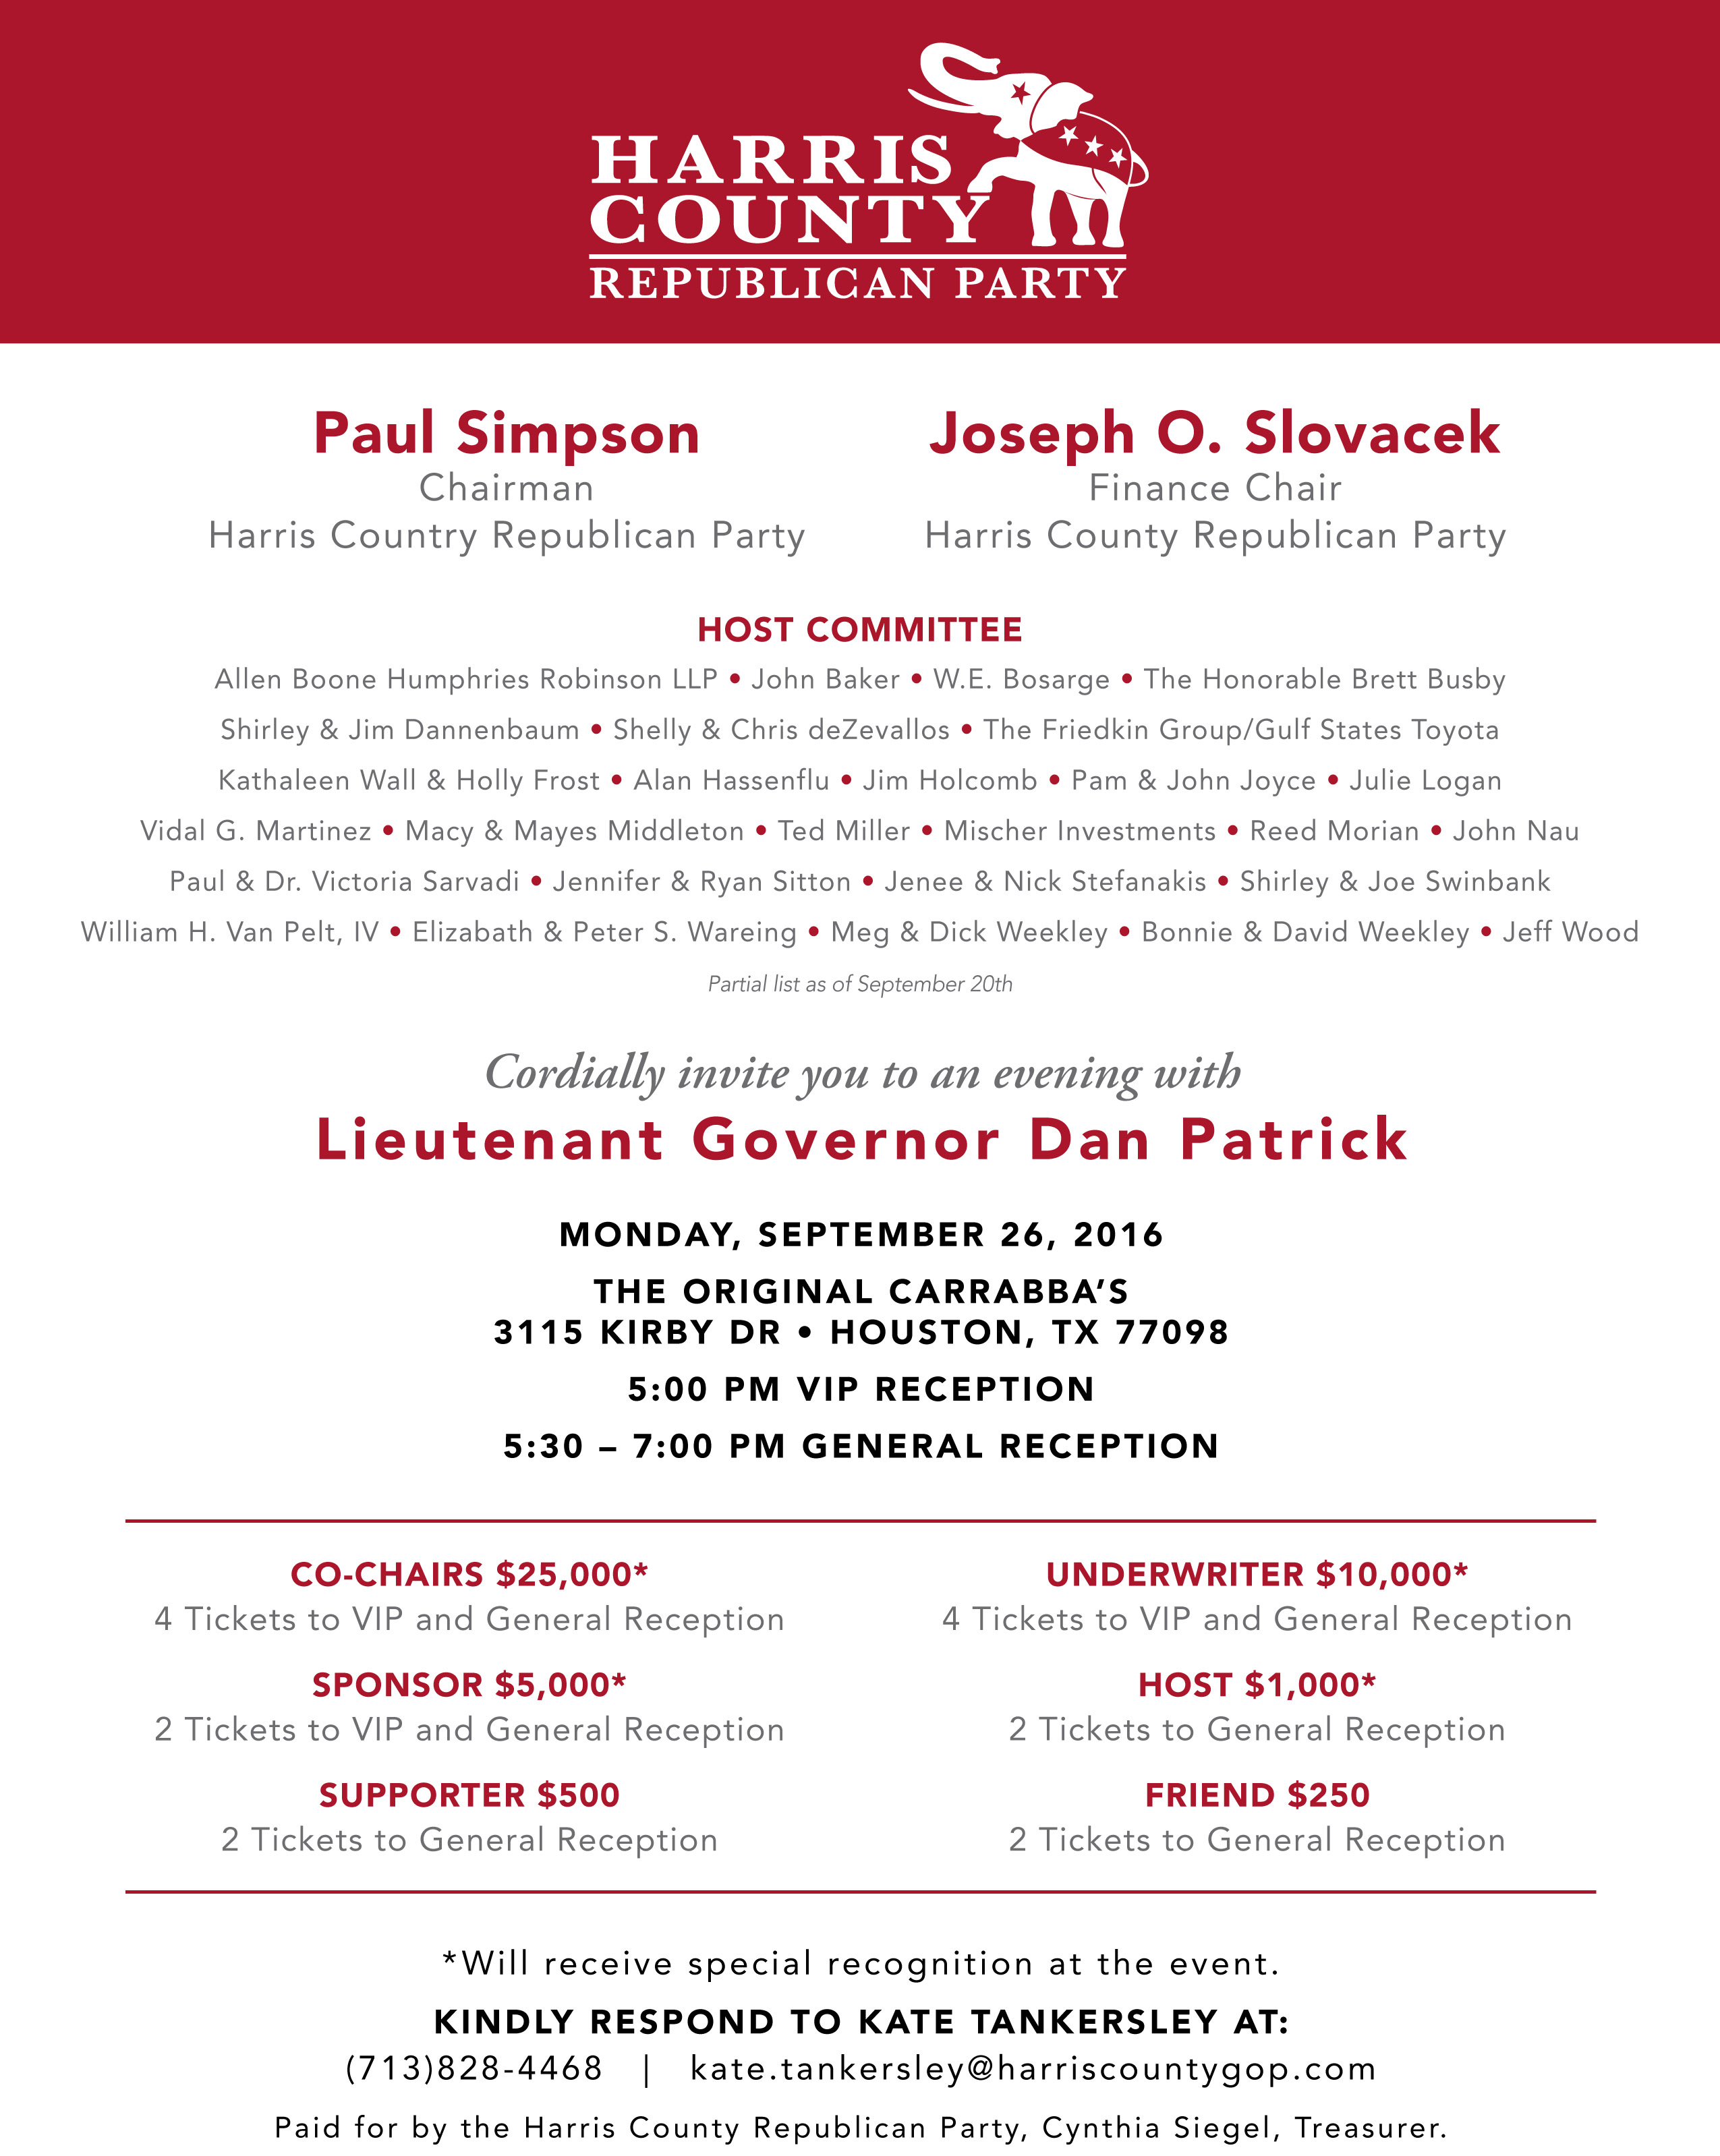 Invite_to_Lt._Governor_Dan_Patrick_Event-9.jpg